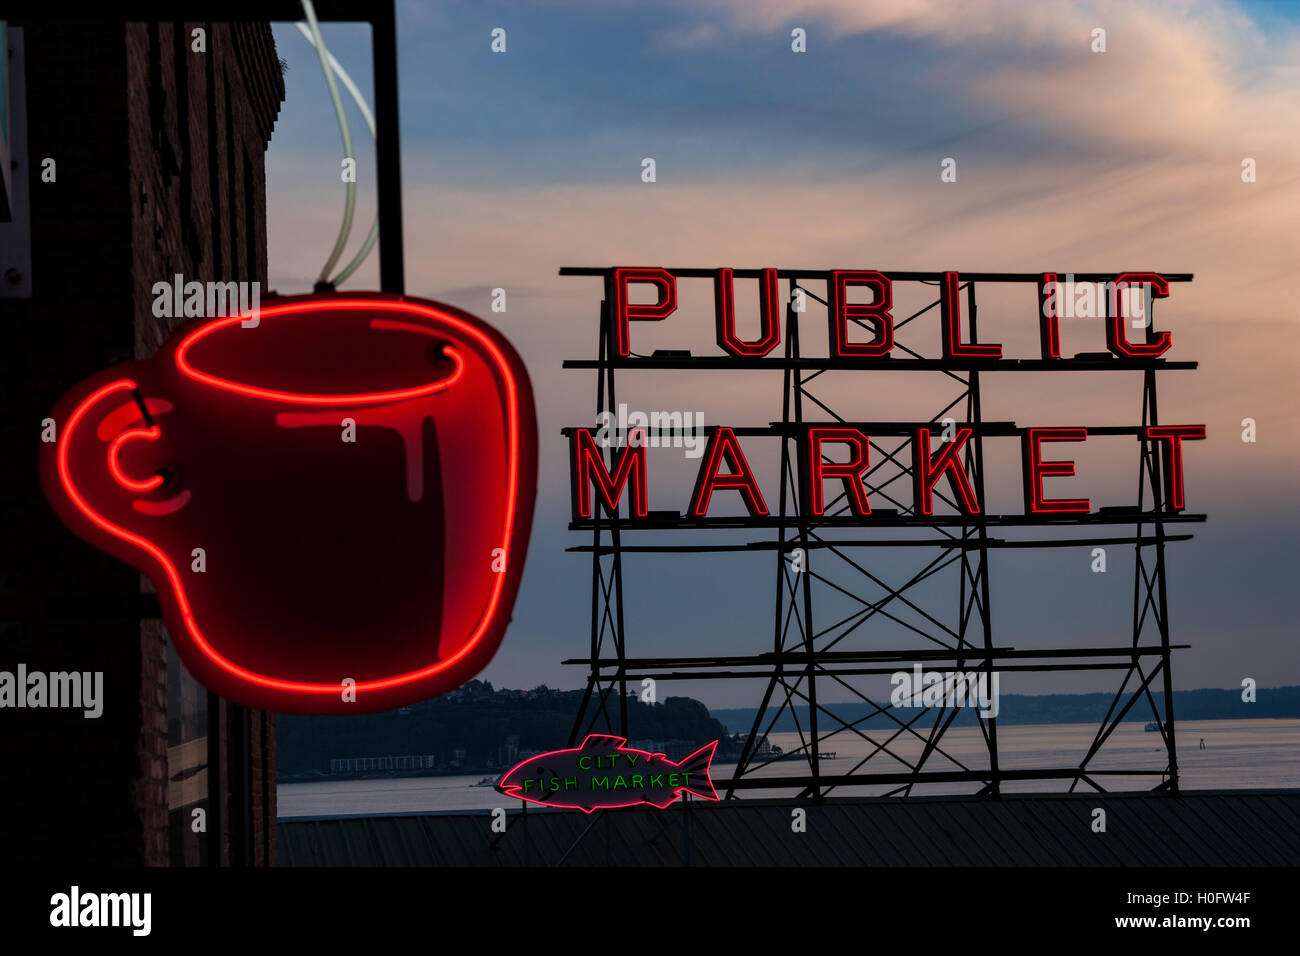 Neon sign for the Pike Place Public Market at twilight in Seattle, Washington. - Stock Image